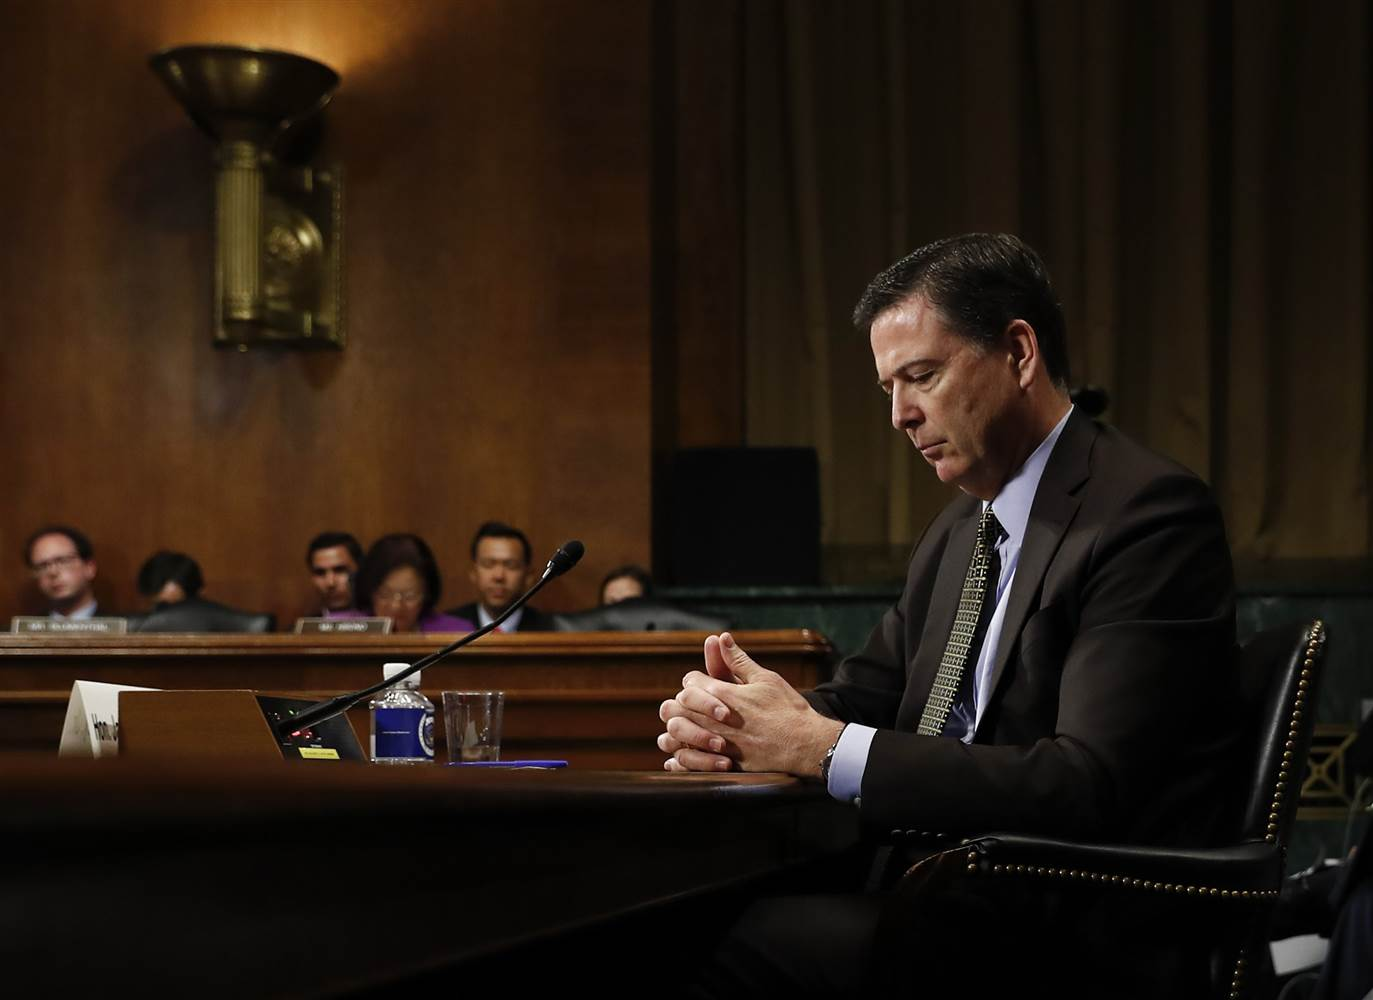 Comey: Trump Can Fire FBI Director For Any Reason He Wants